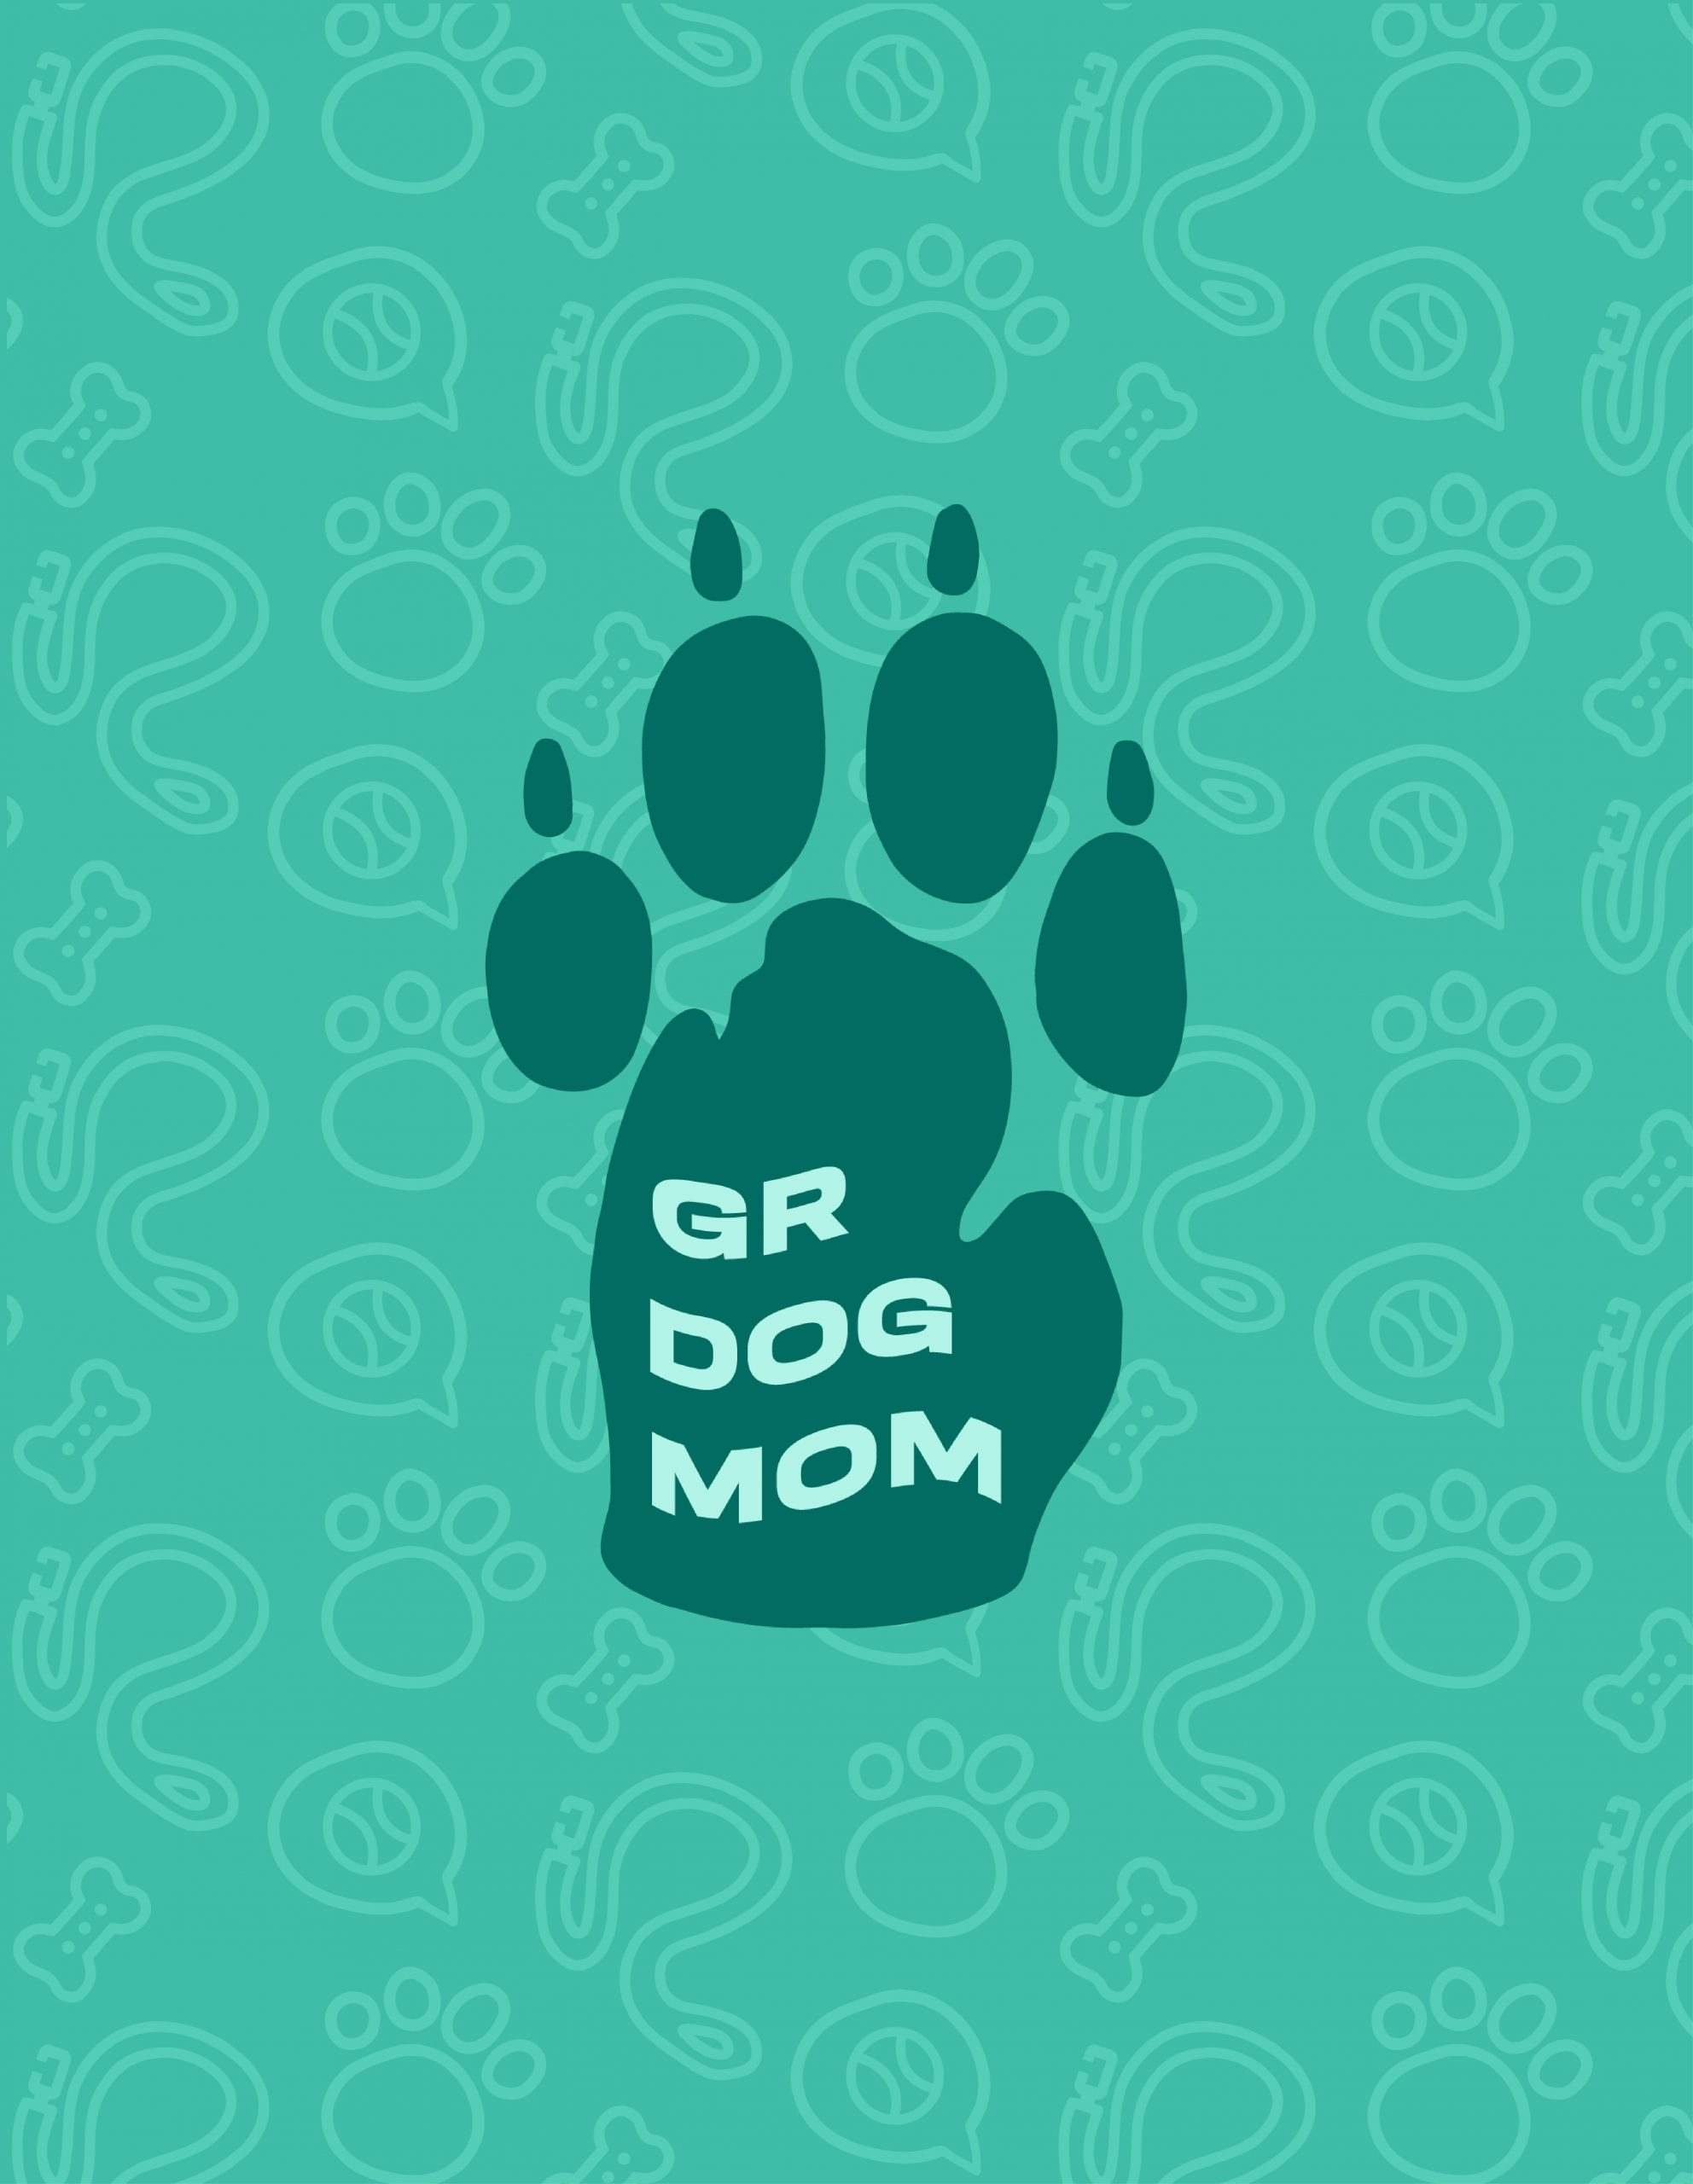 Green paw with text GR Dog Mom